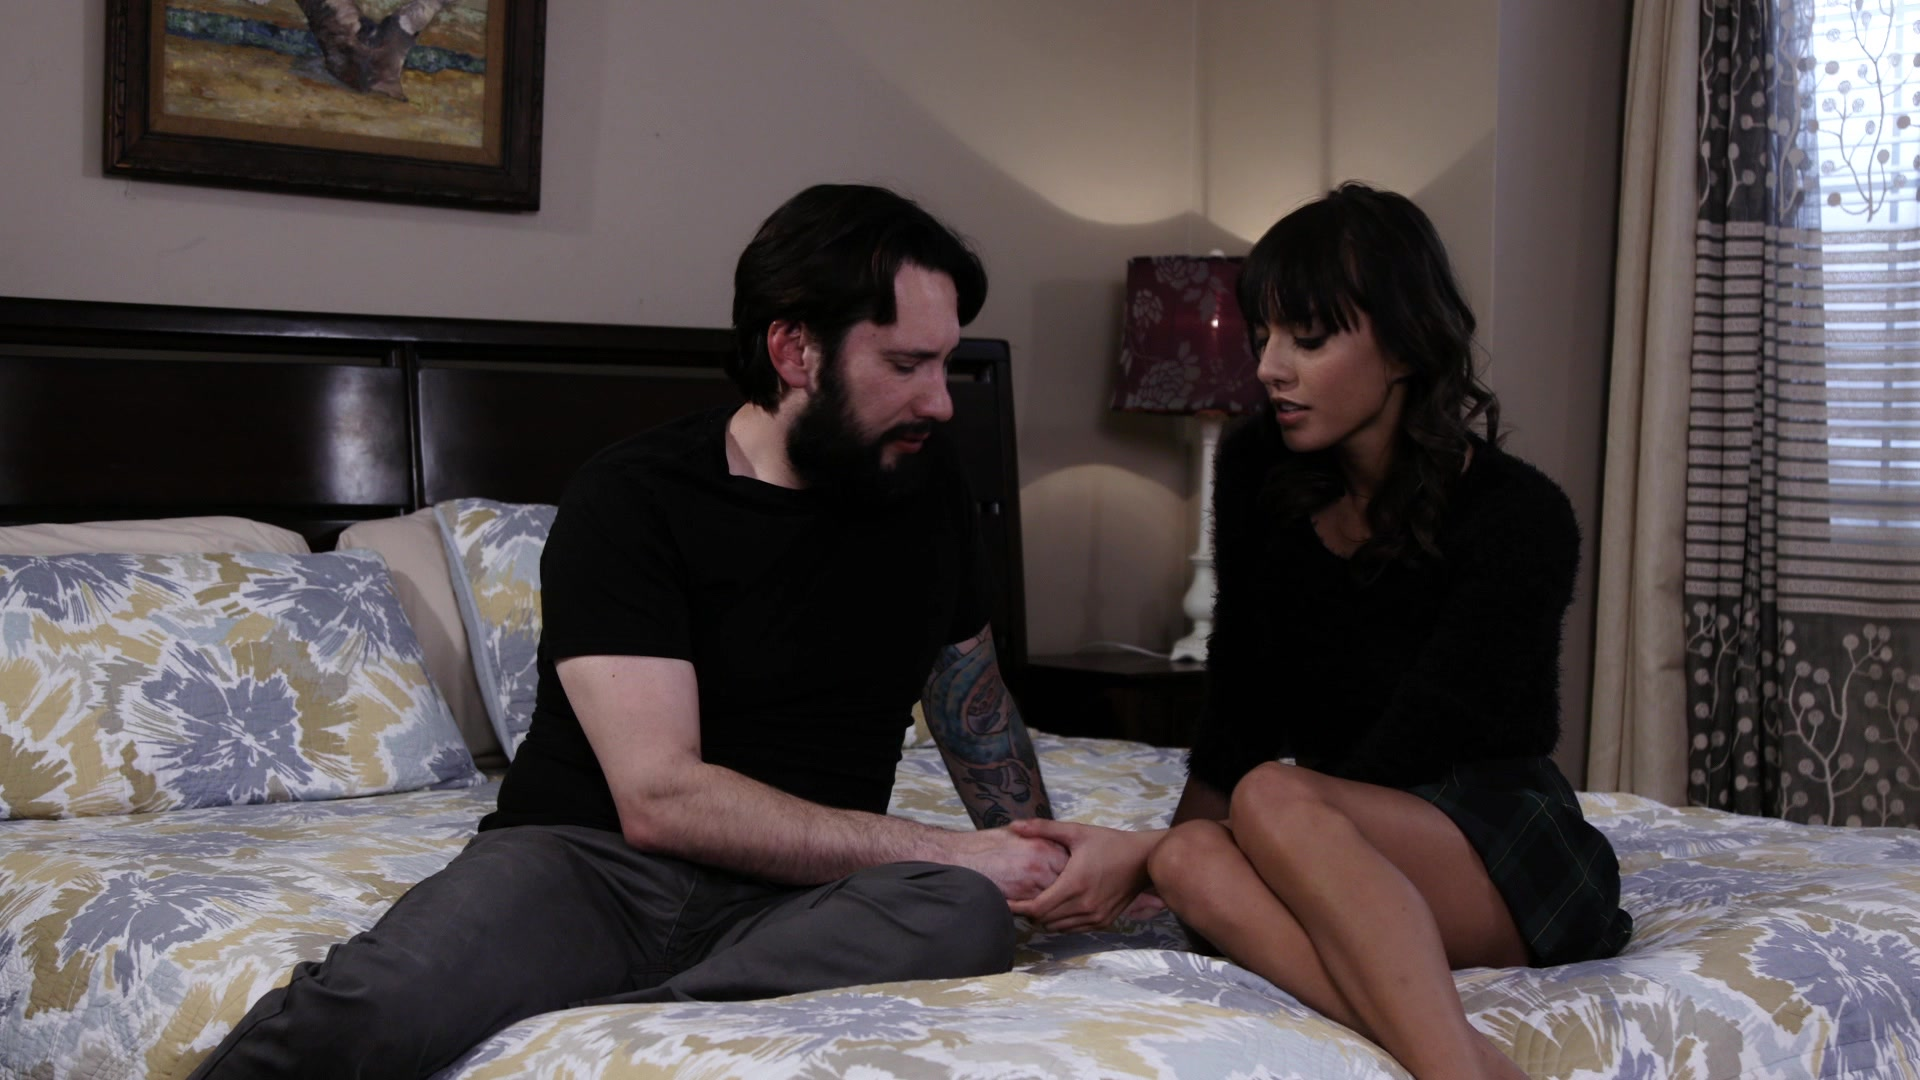 Scene with Tommy Pistol and Janice Griffith - image 1 out of 20